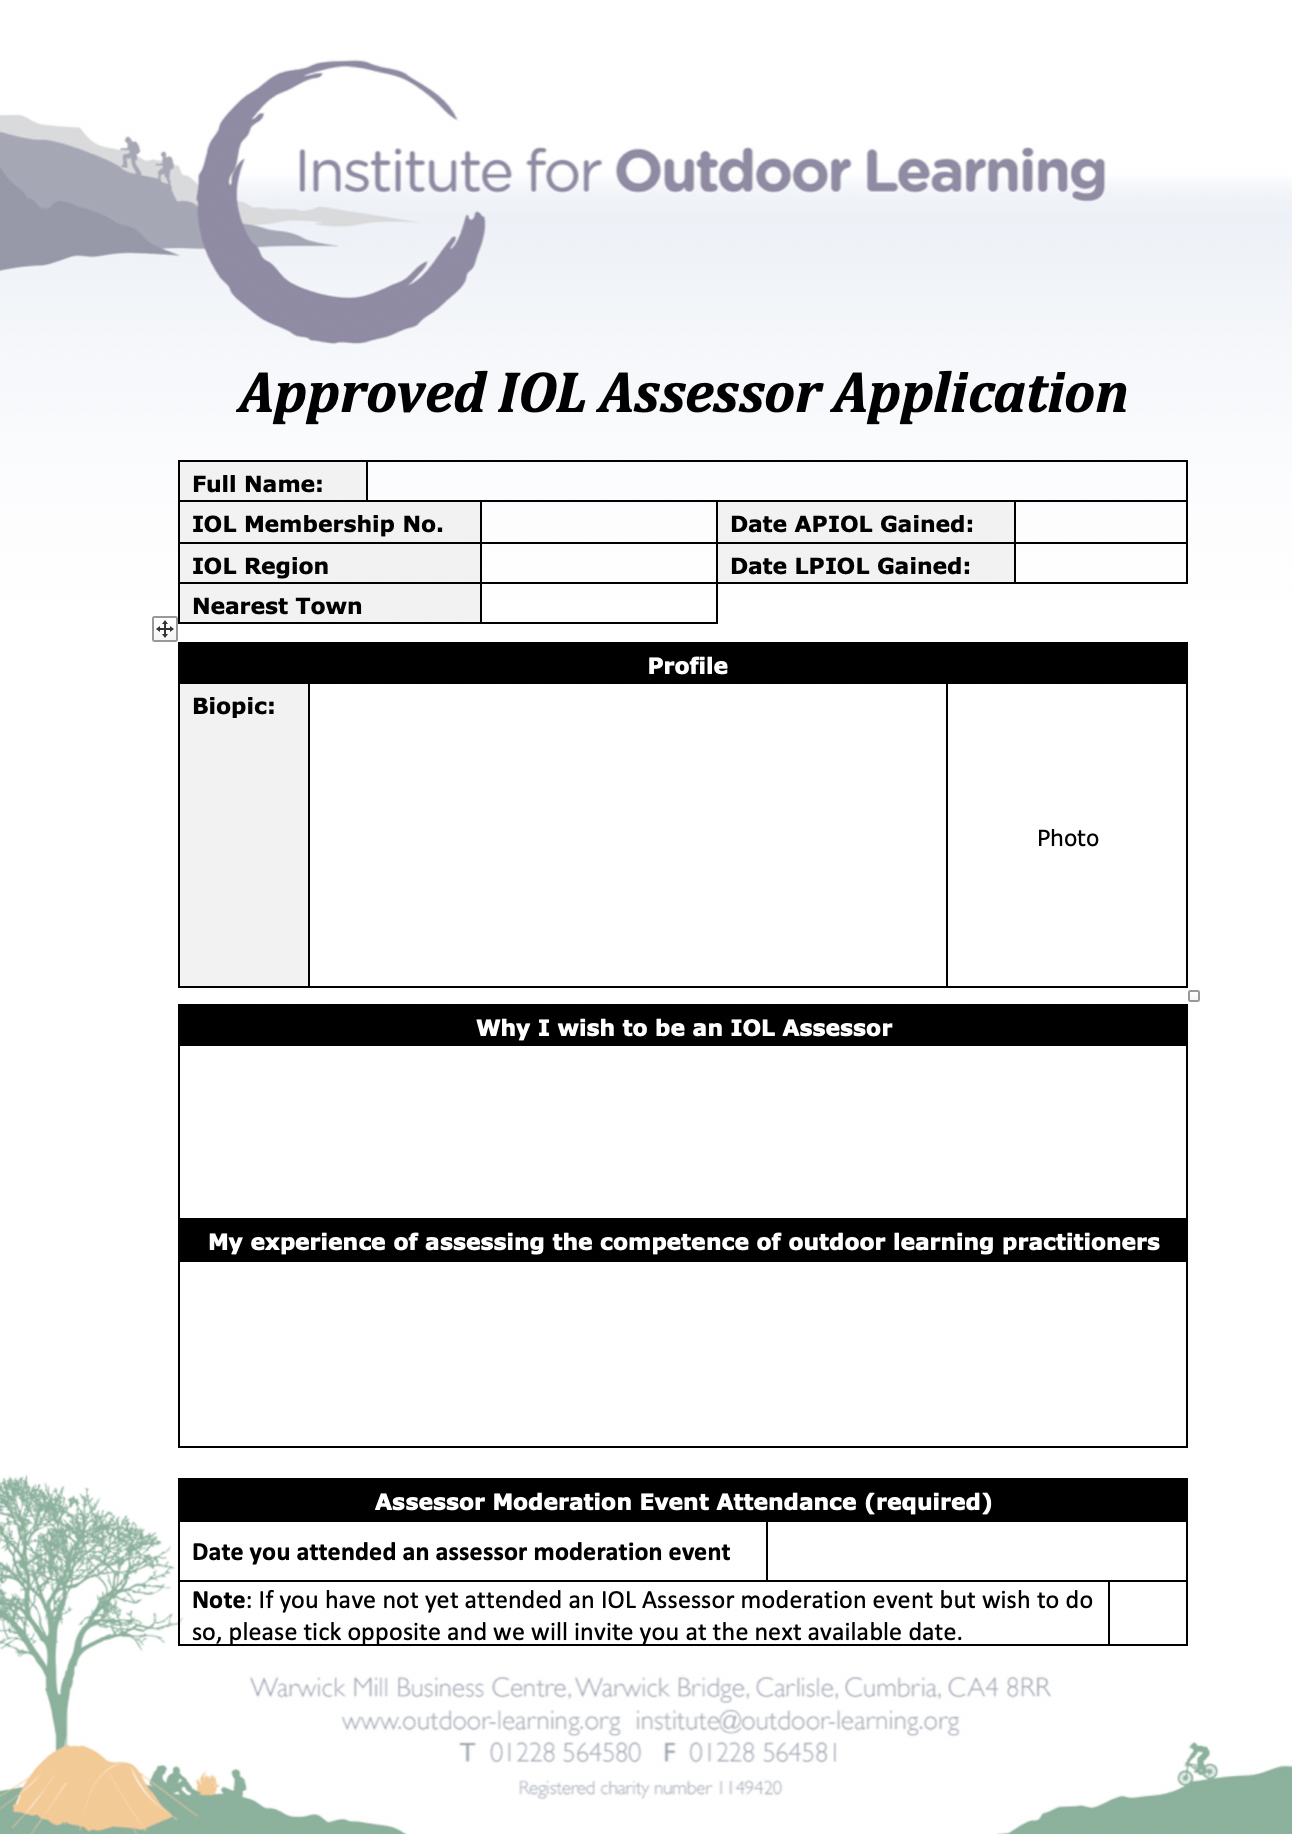 Approved Assessor Application